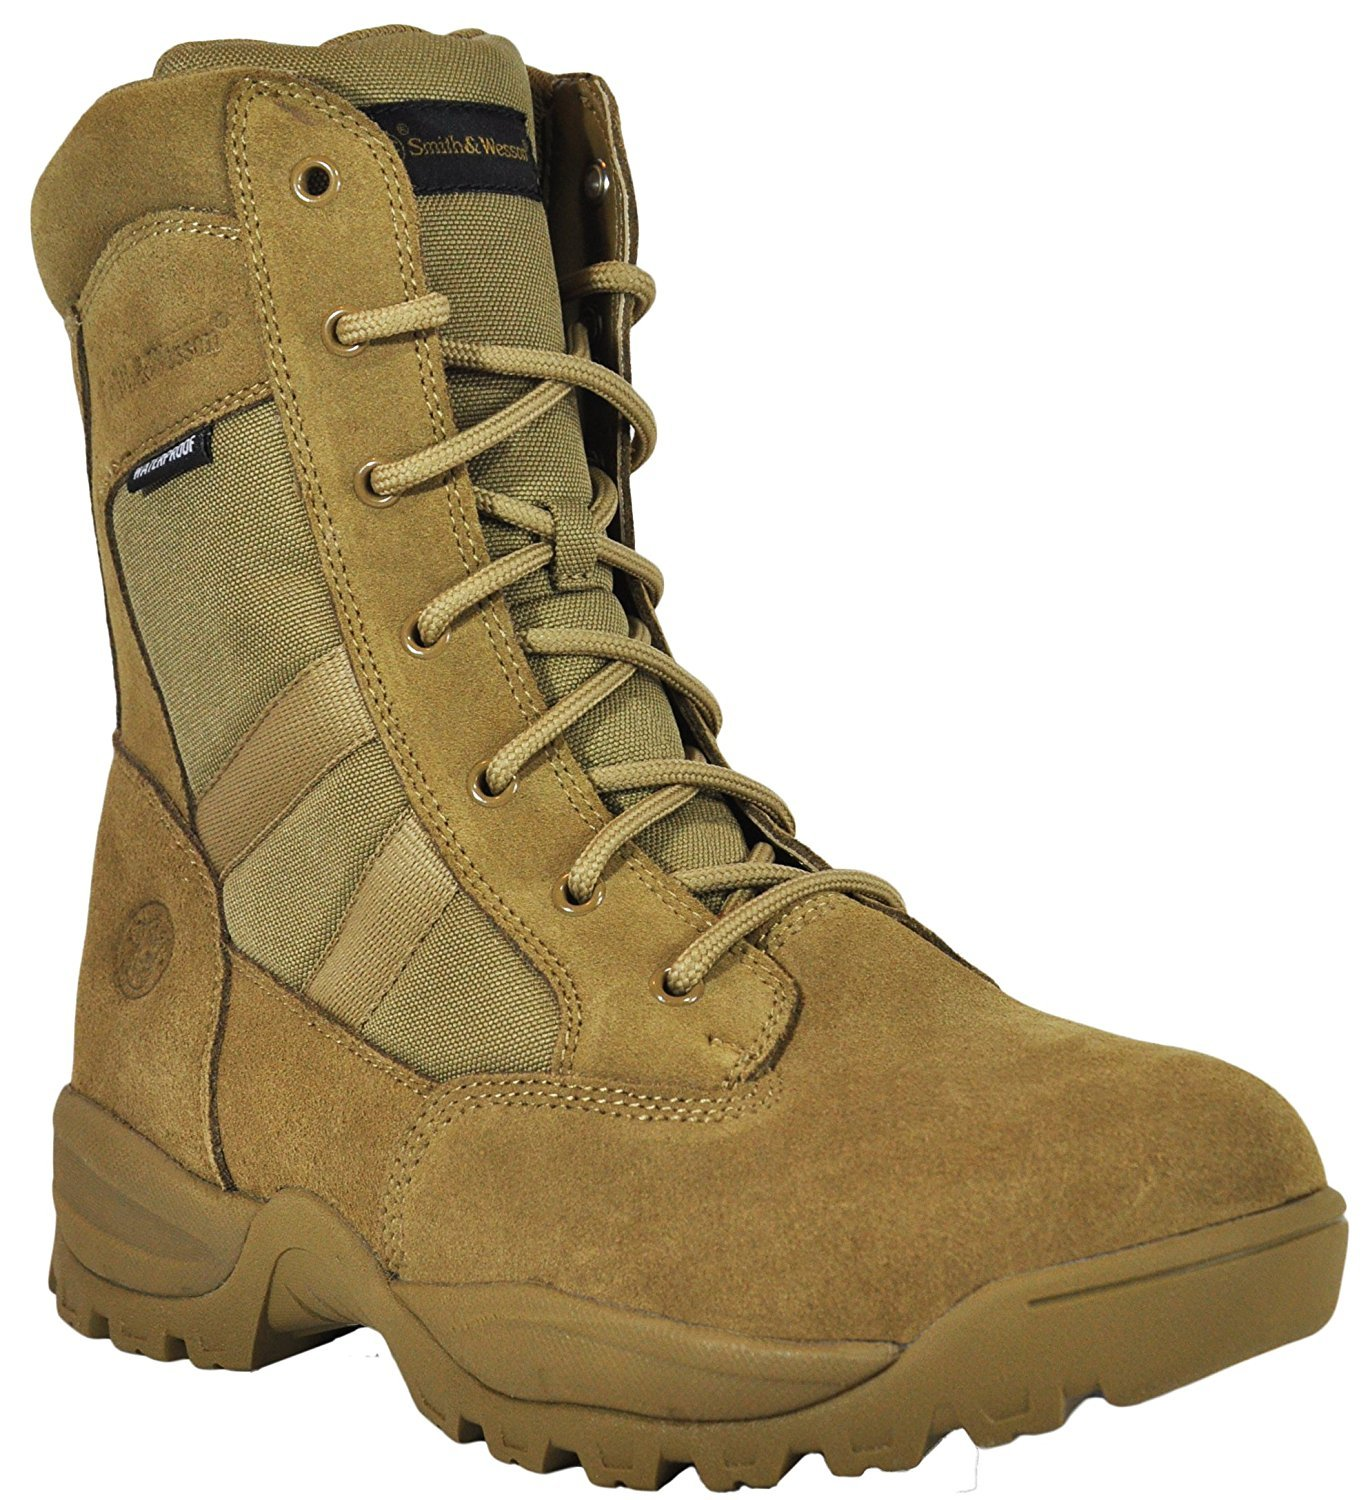 Smith Wesson Footwear Breach Tactical